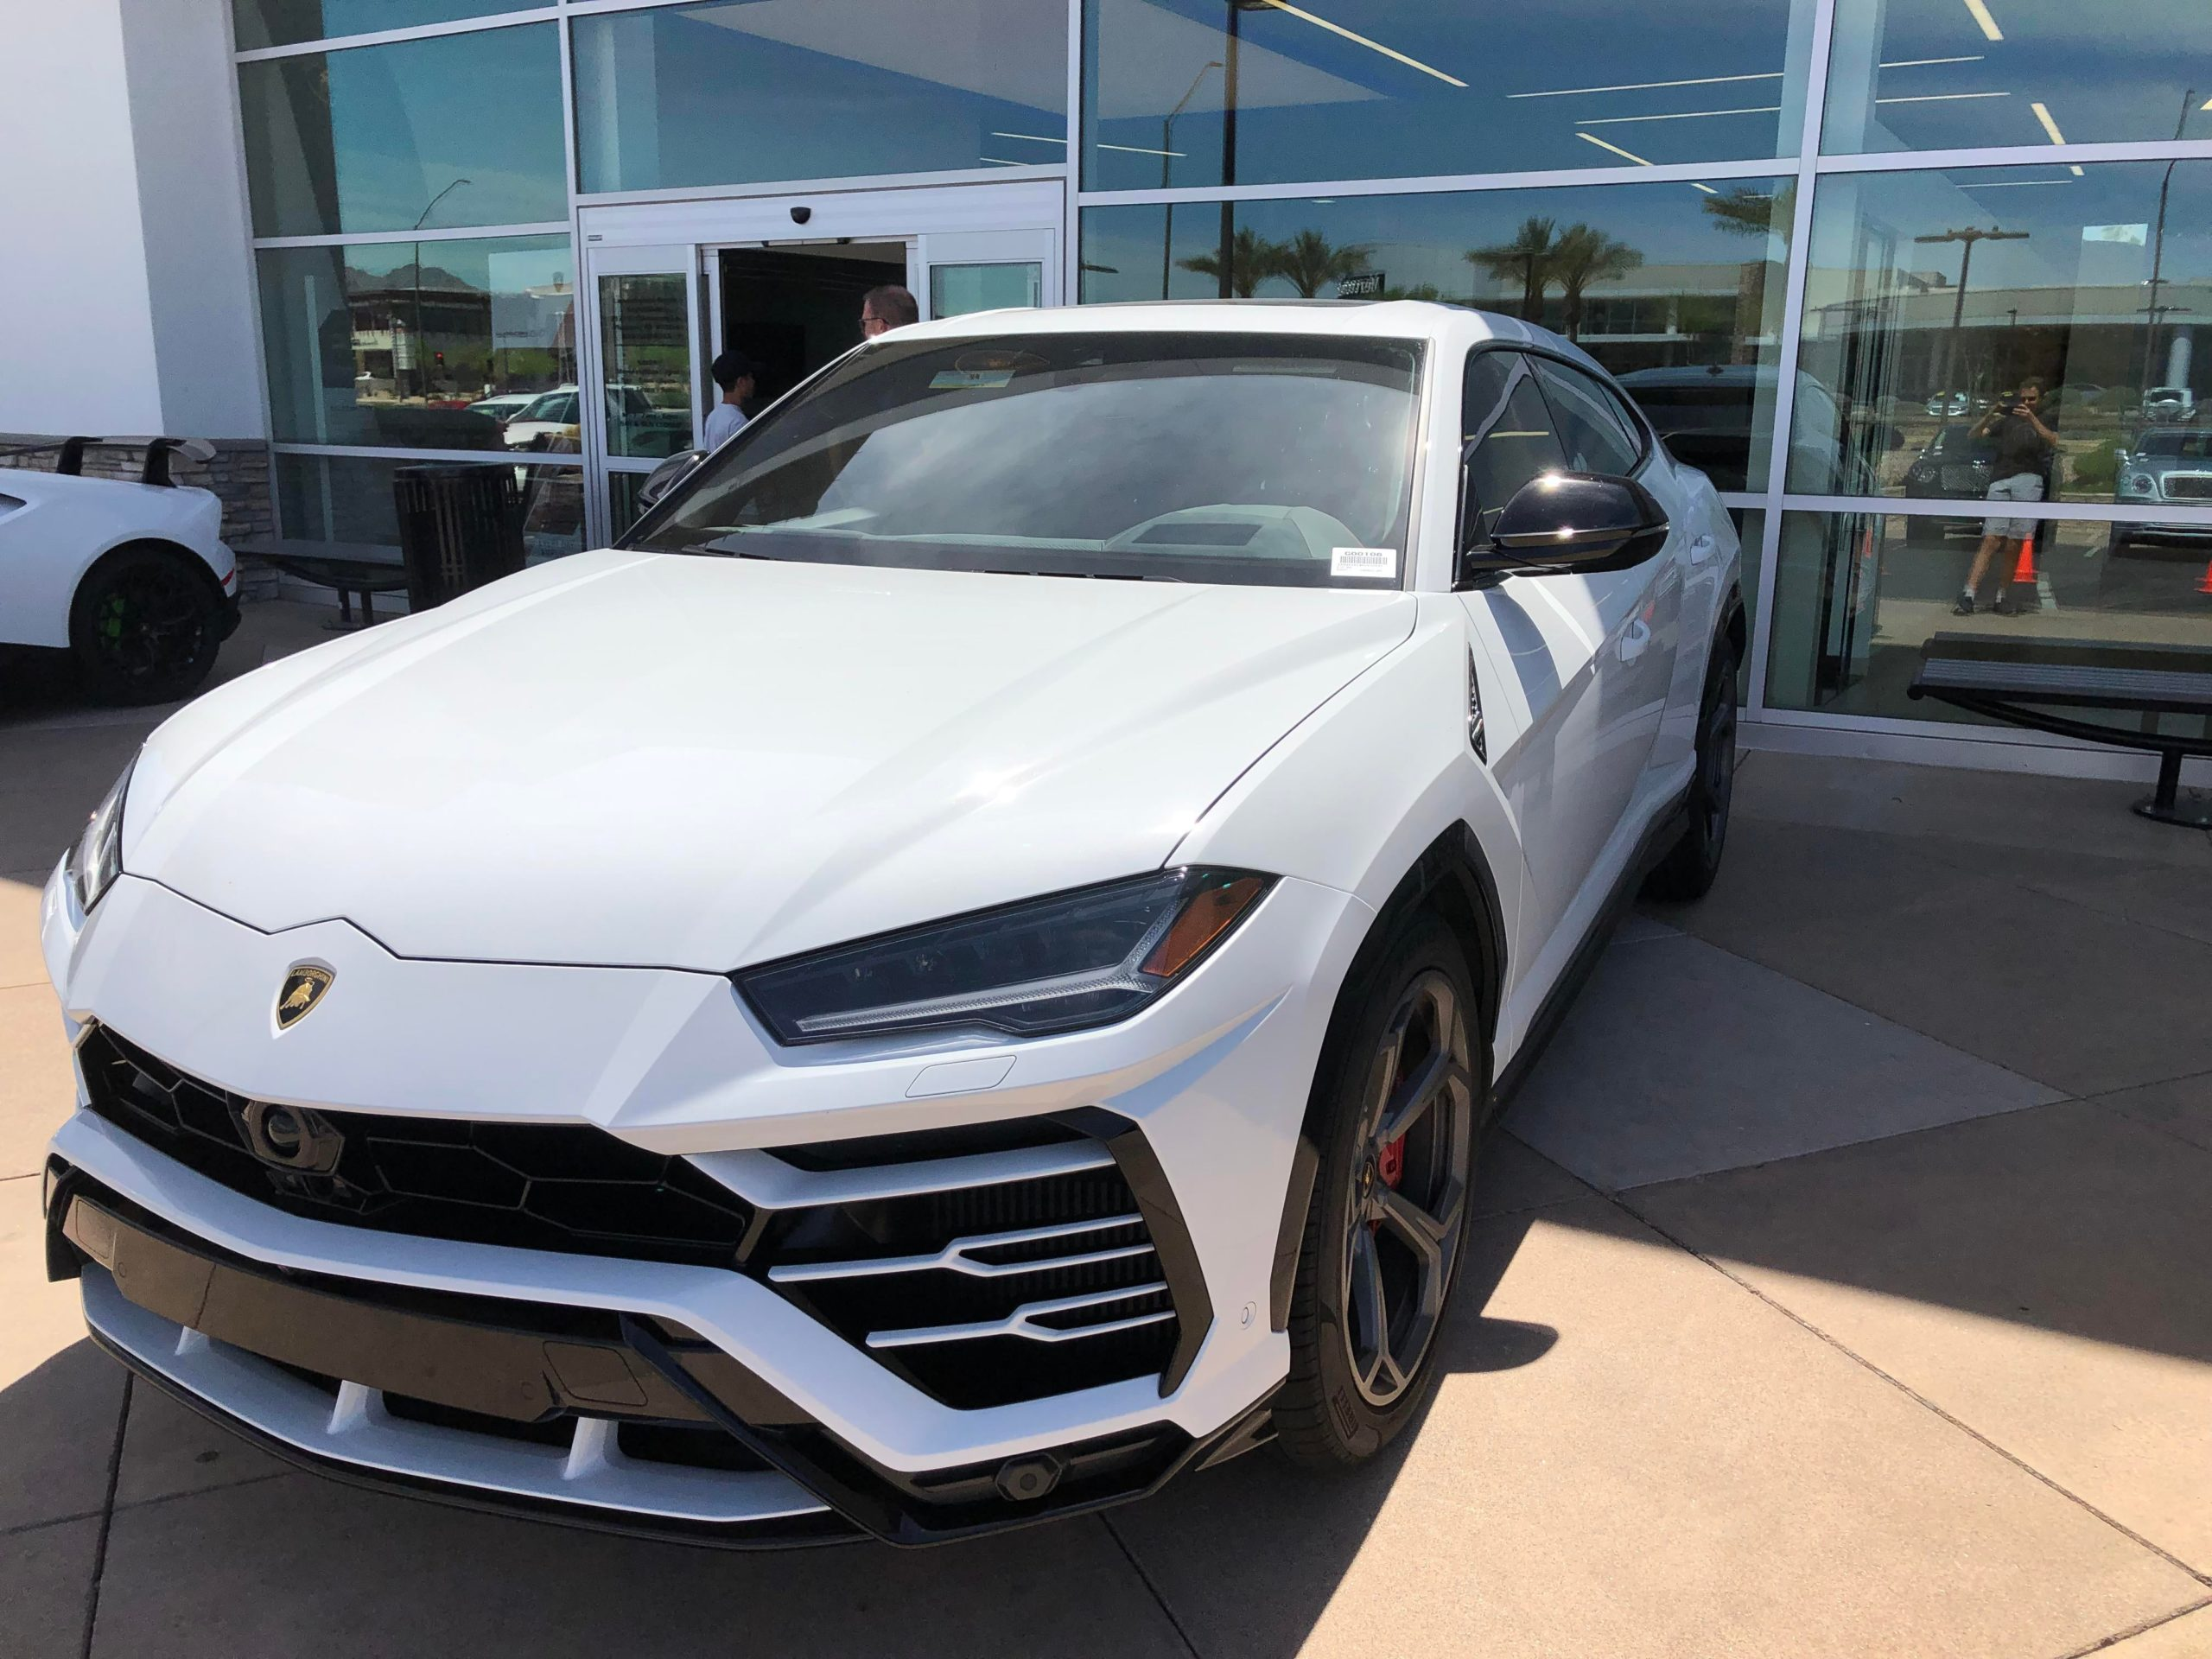 This Urus at my local dealership